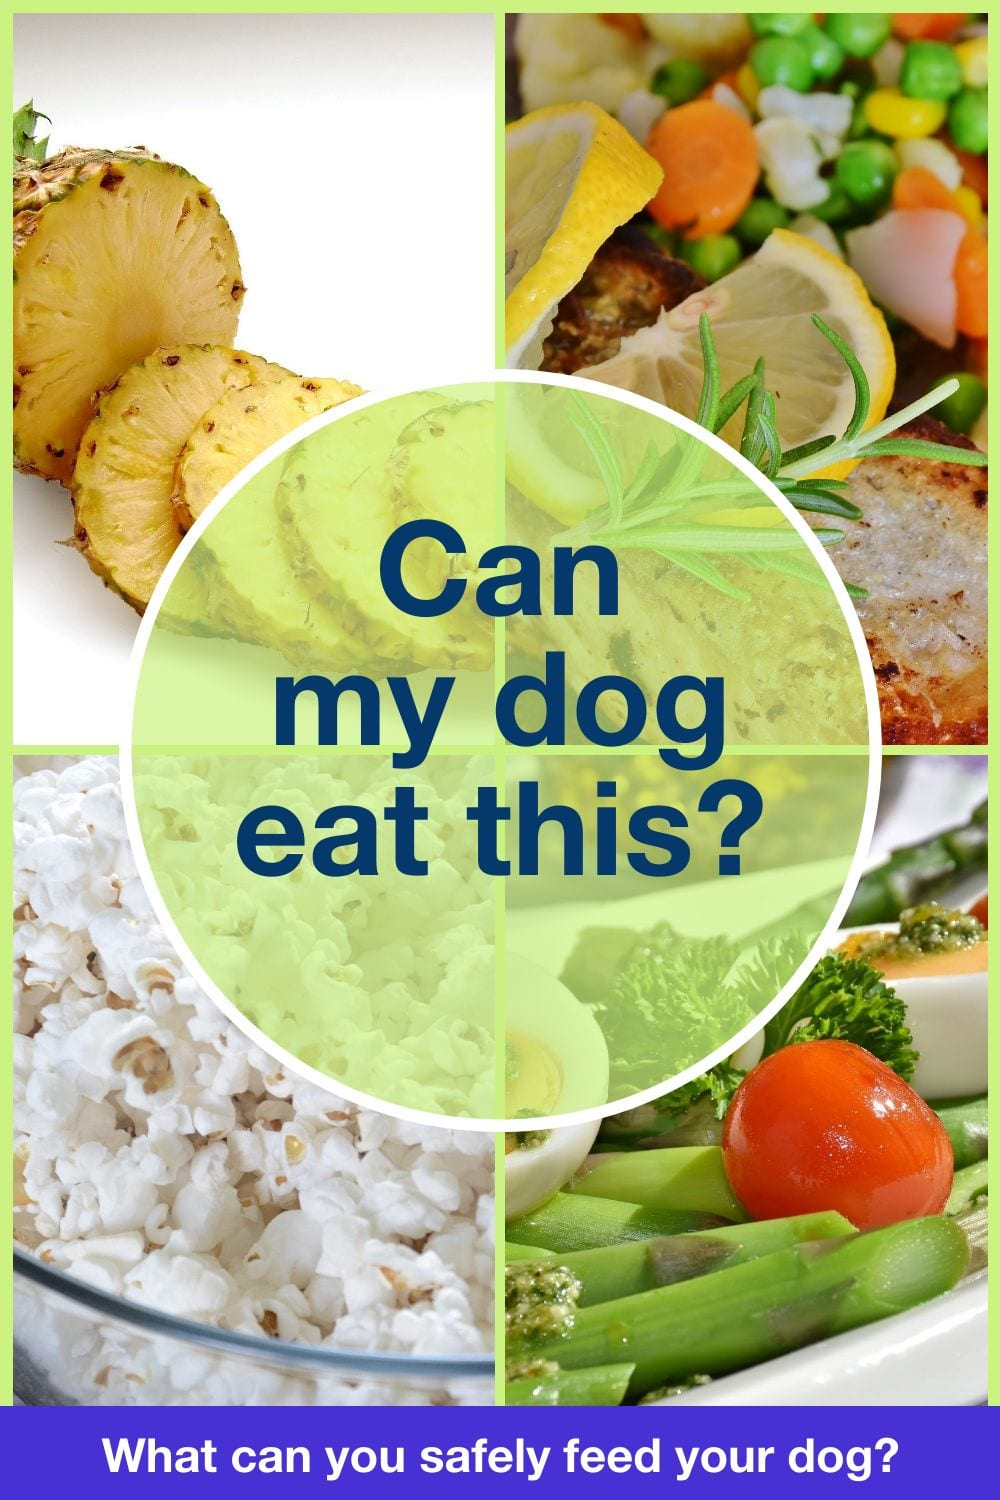 Can my dog eat this